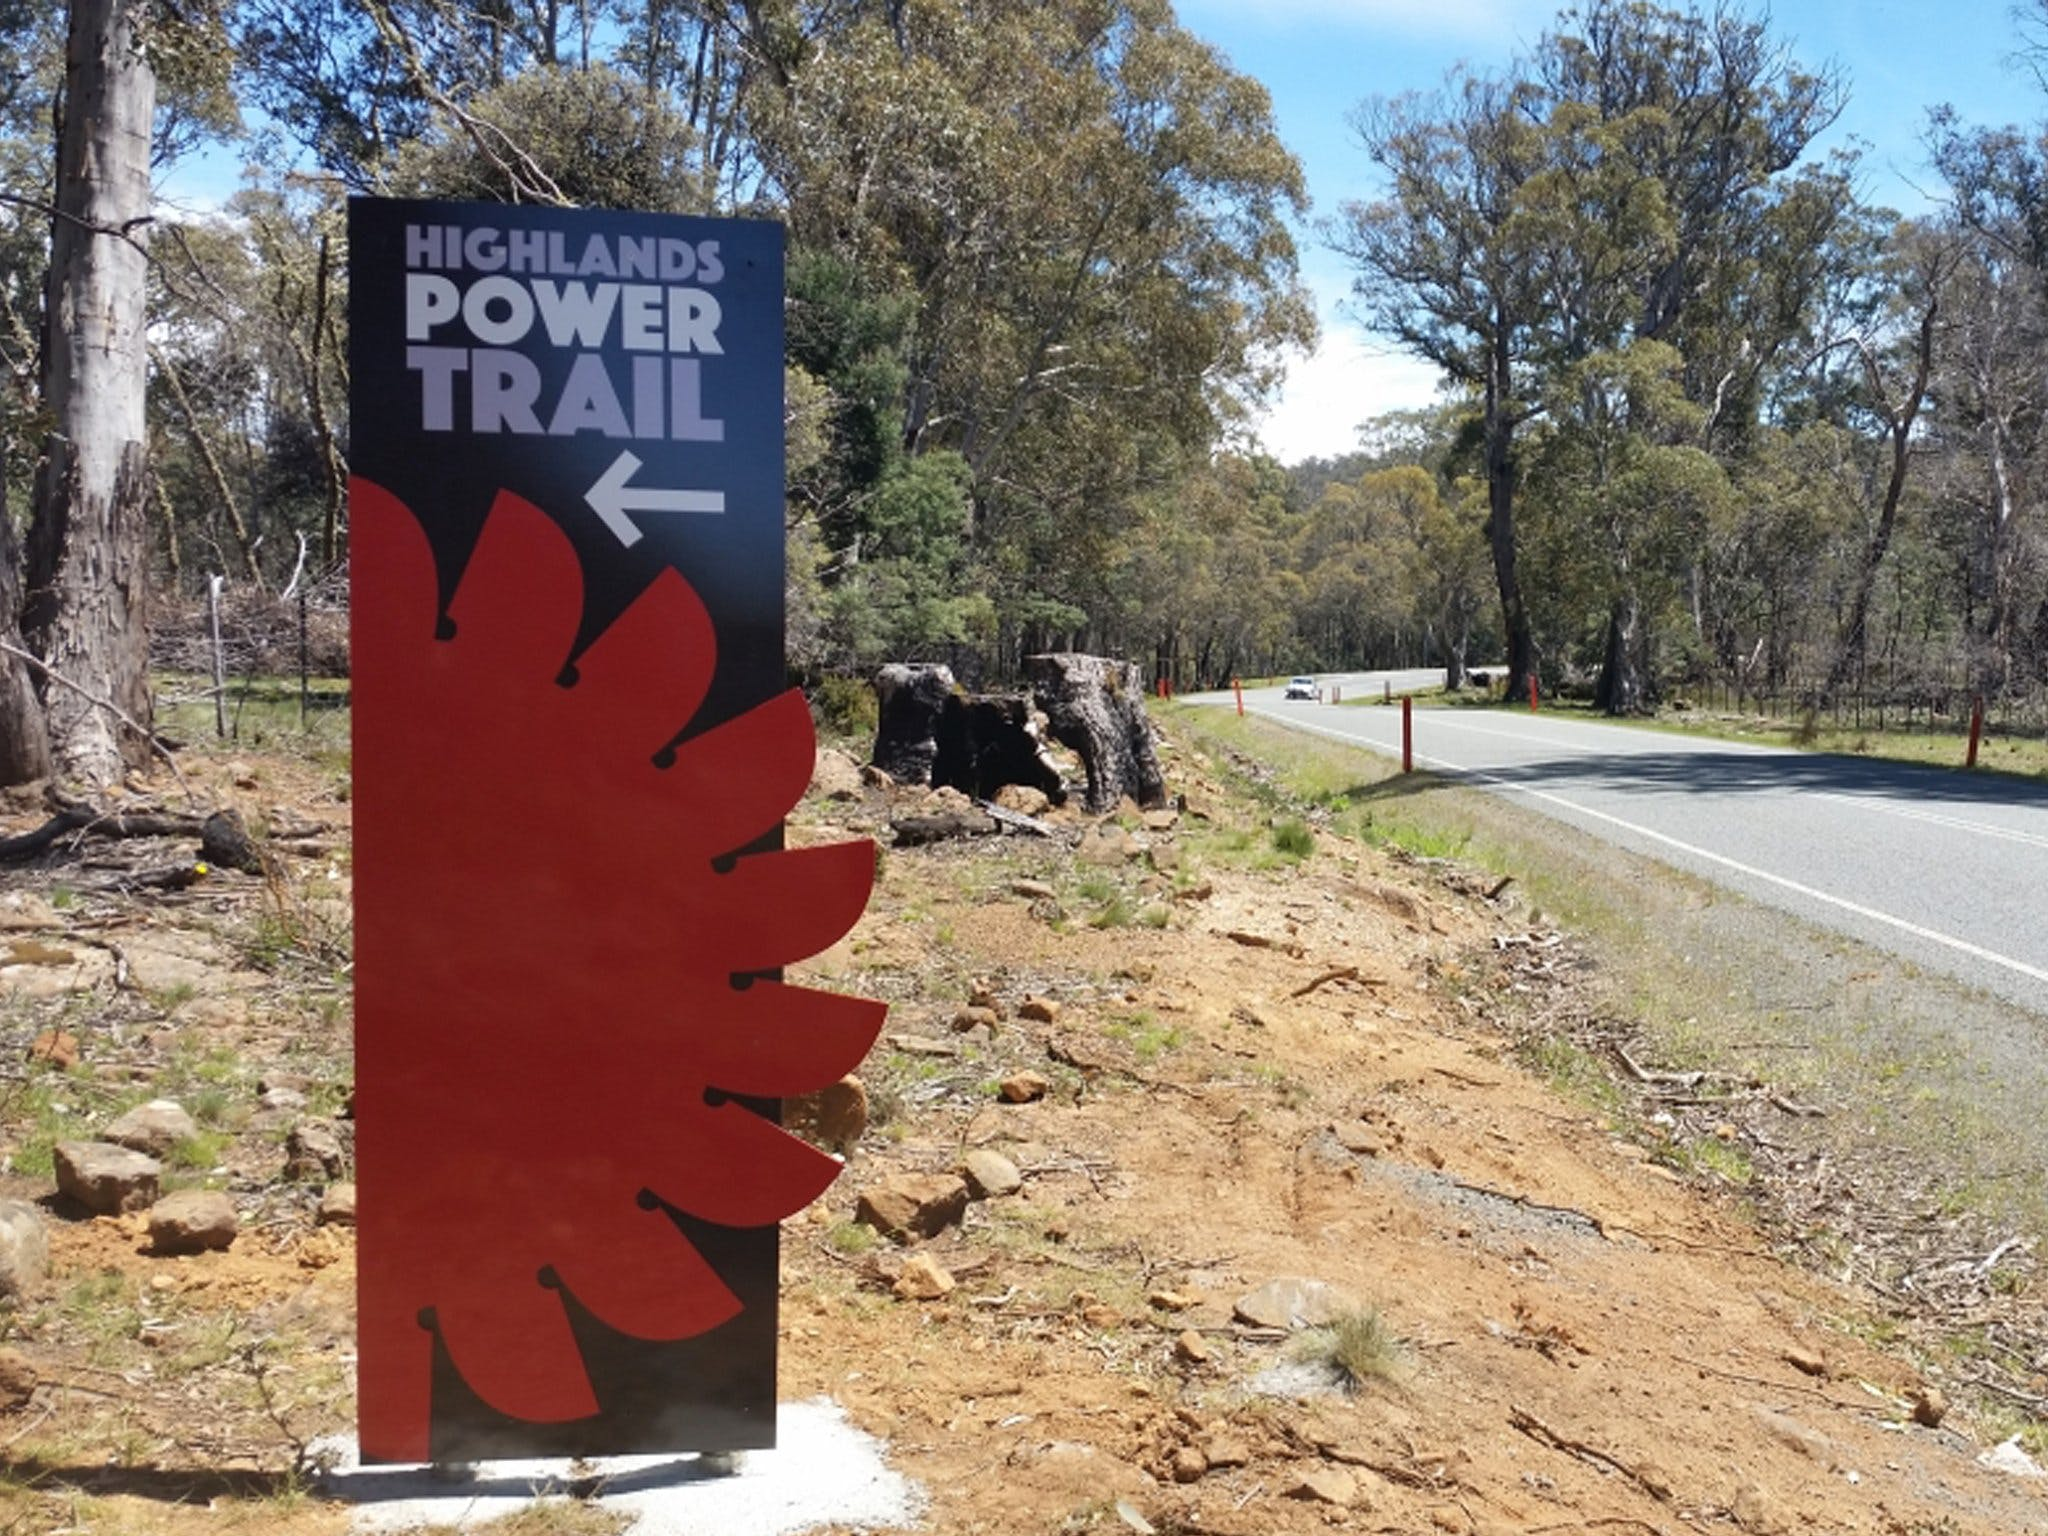 Highlands Power Trail - Accommodation Perth